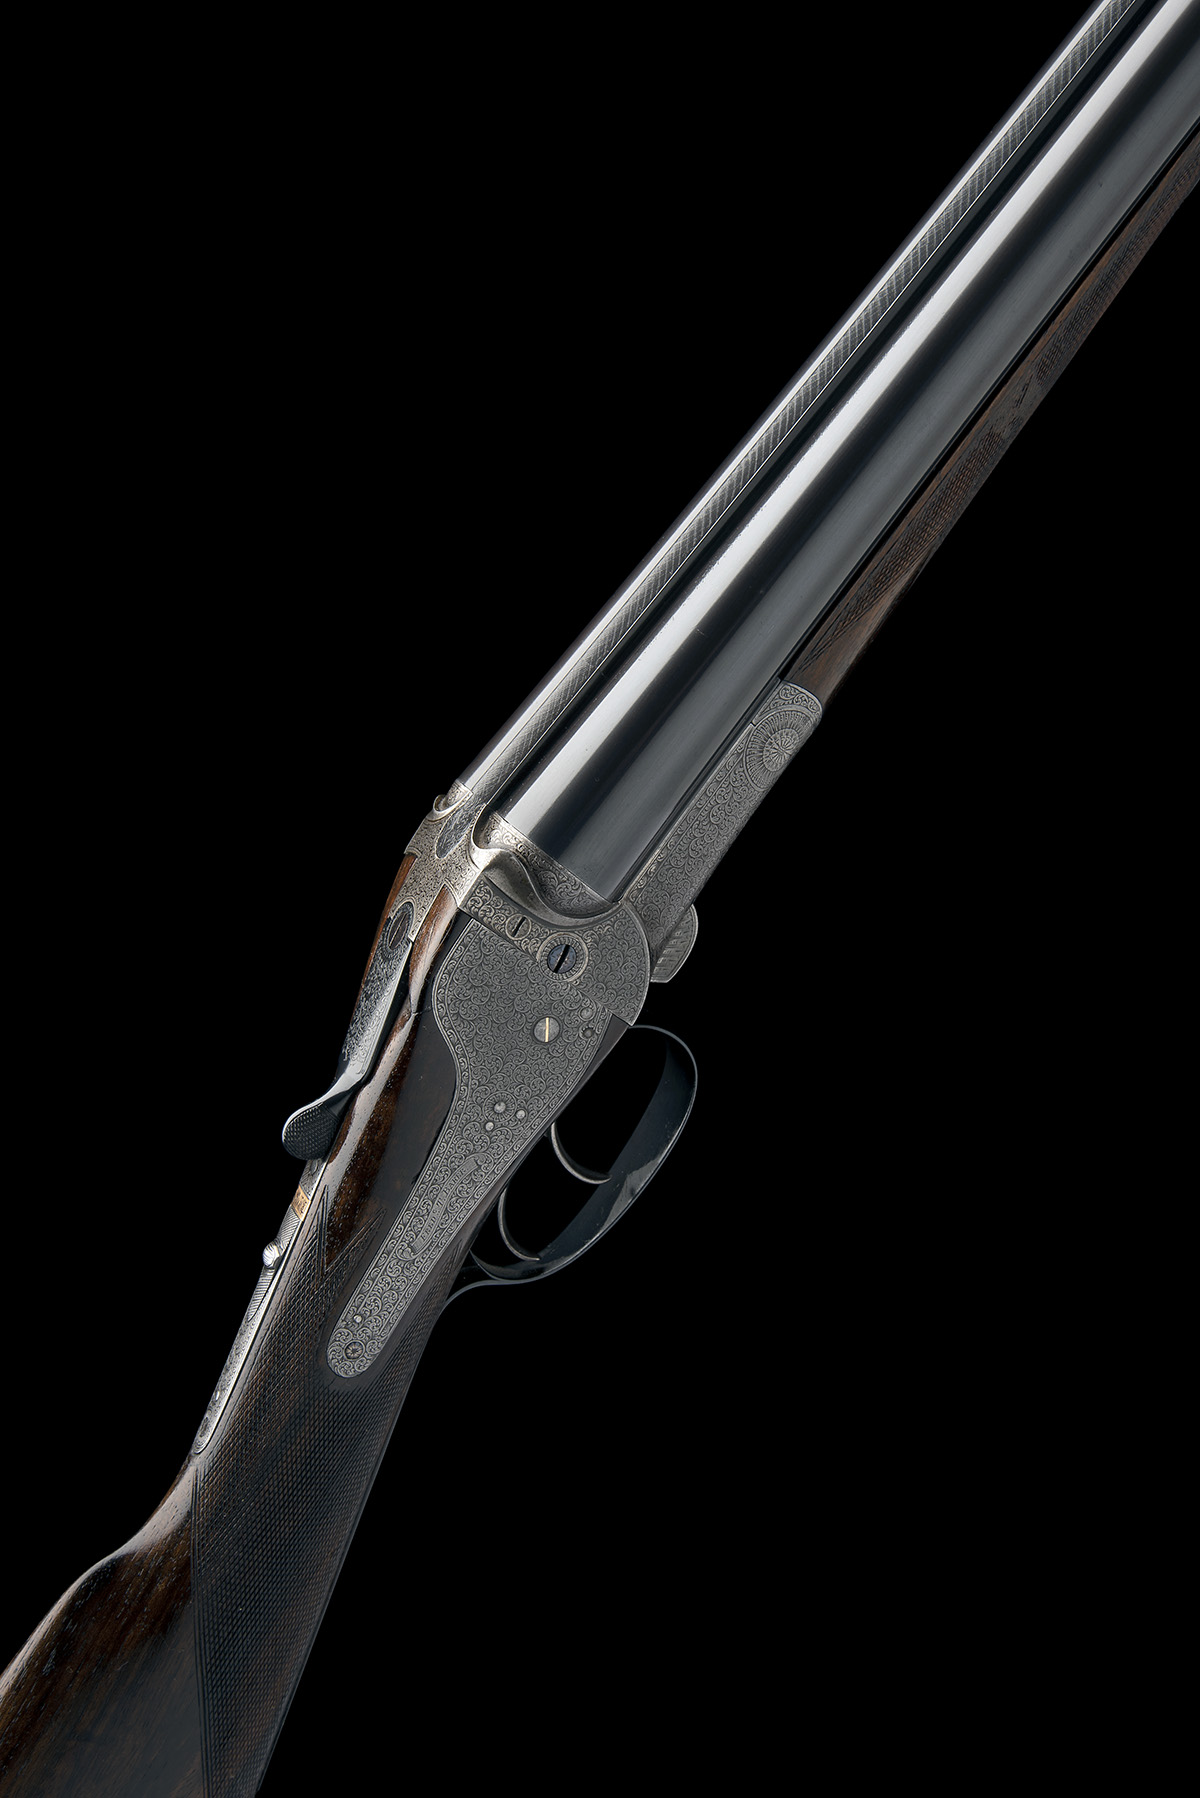 FREDc. T. BAKER A 12-BORE NEEDHAM 1874 PATENT HAMMERLESS SIDELOCK EJECTOR, serial no. 6749, circa